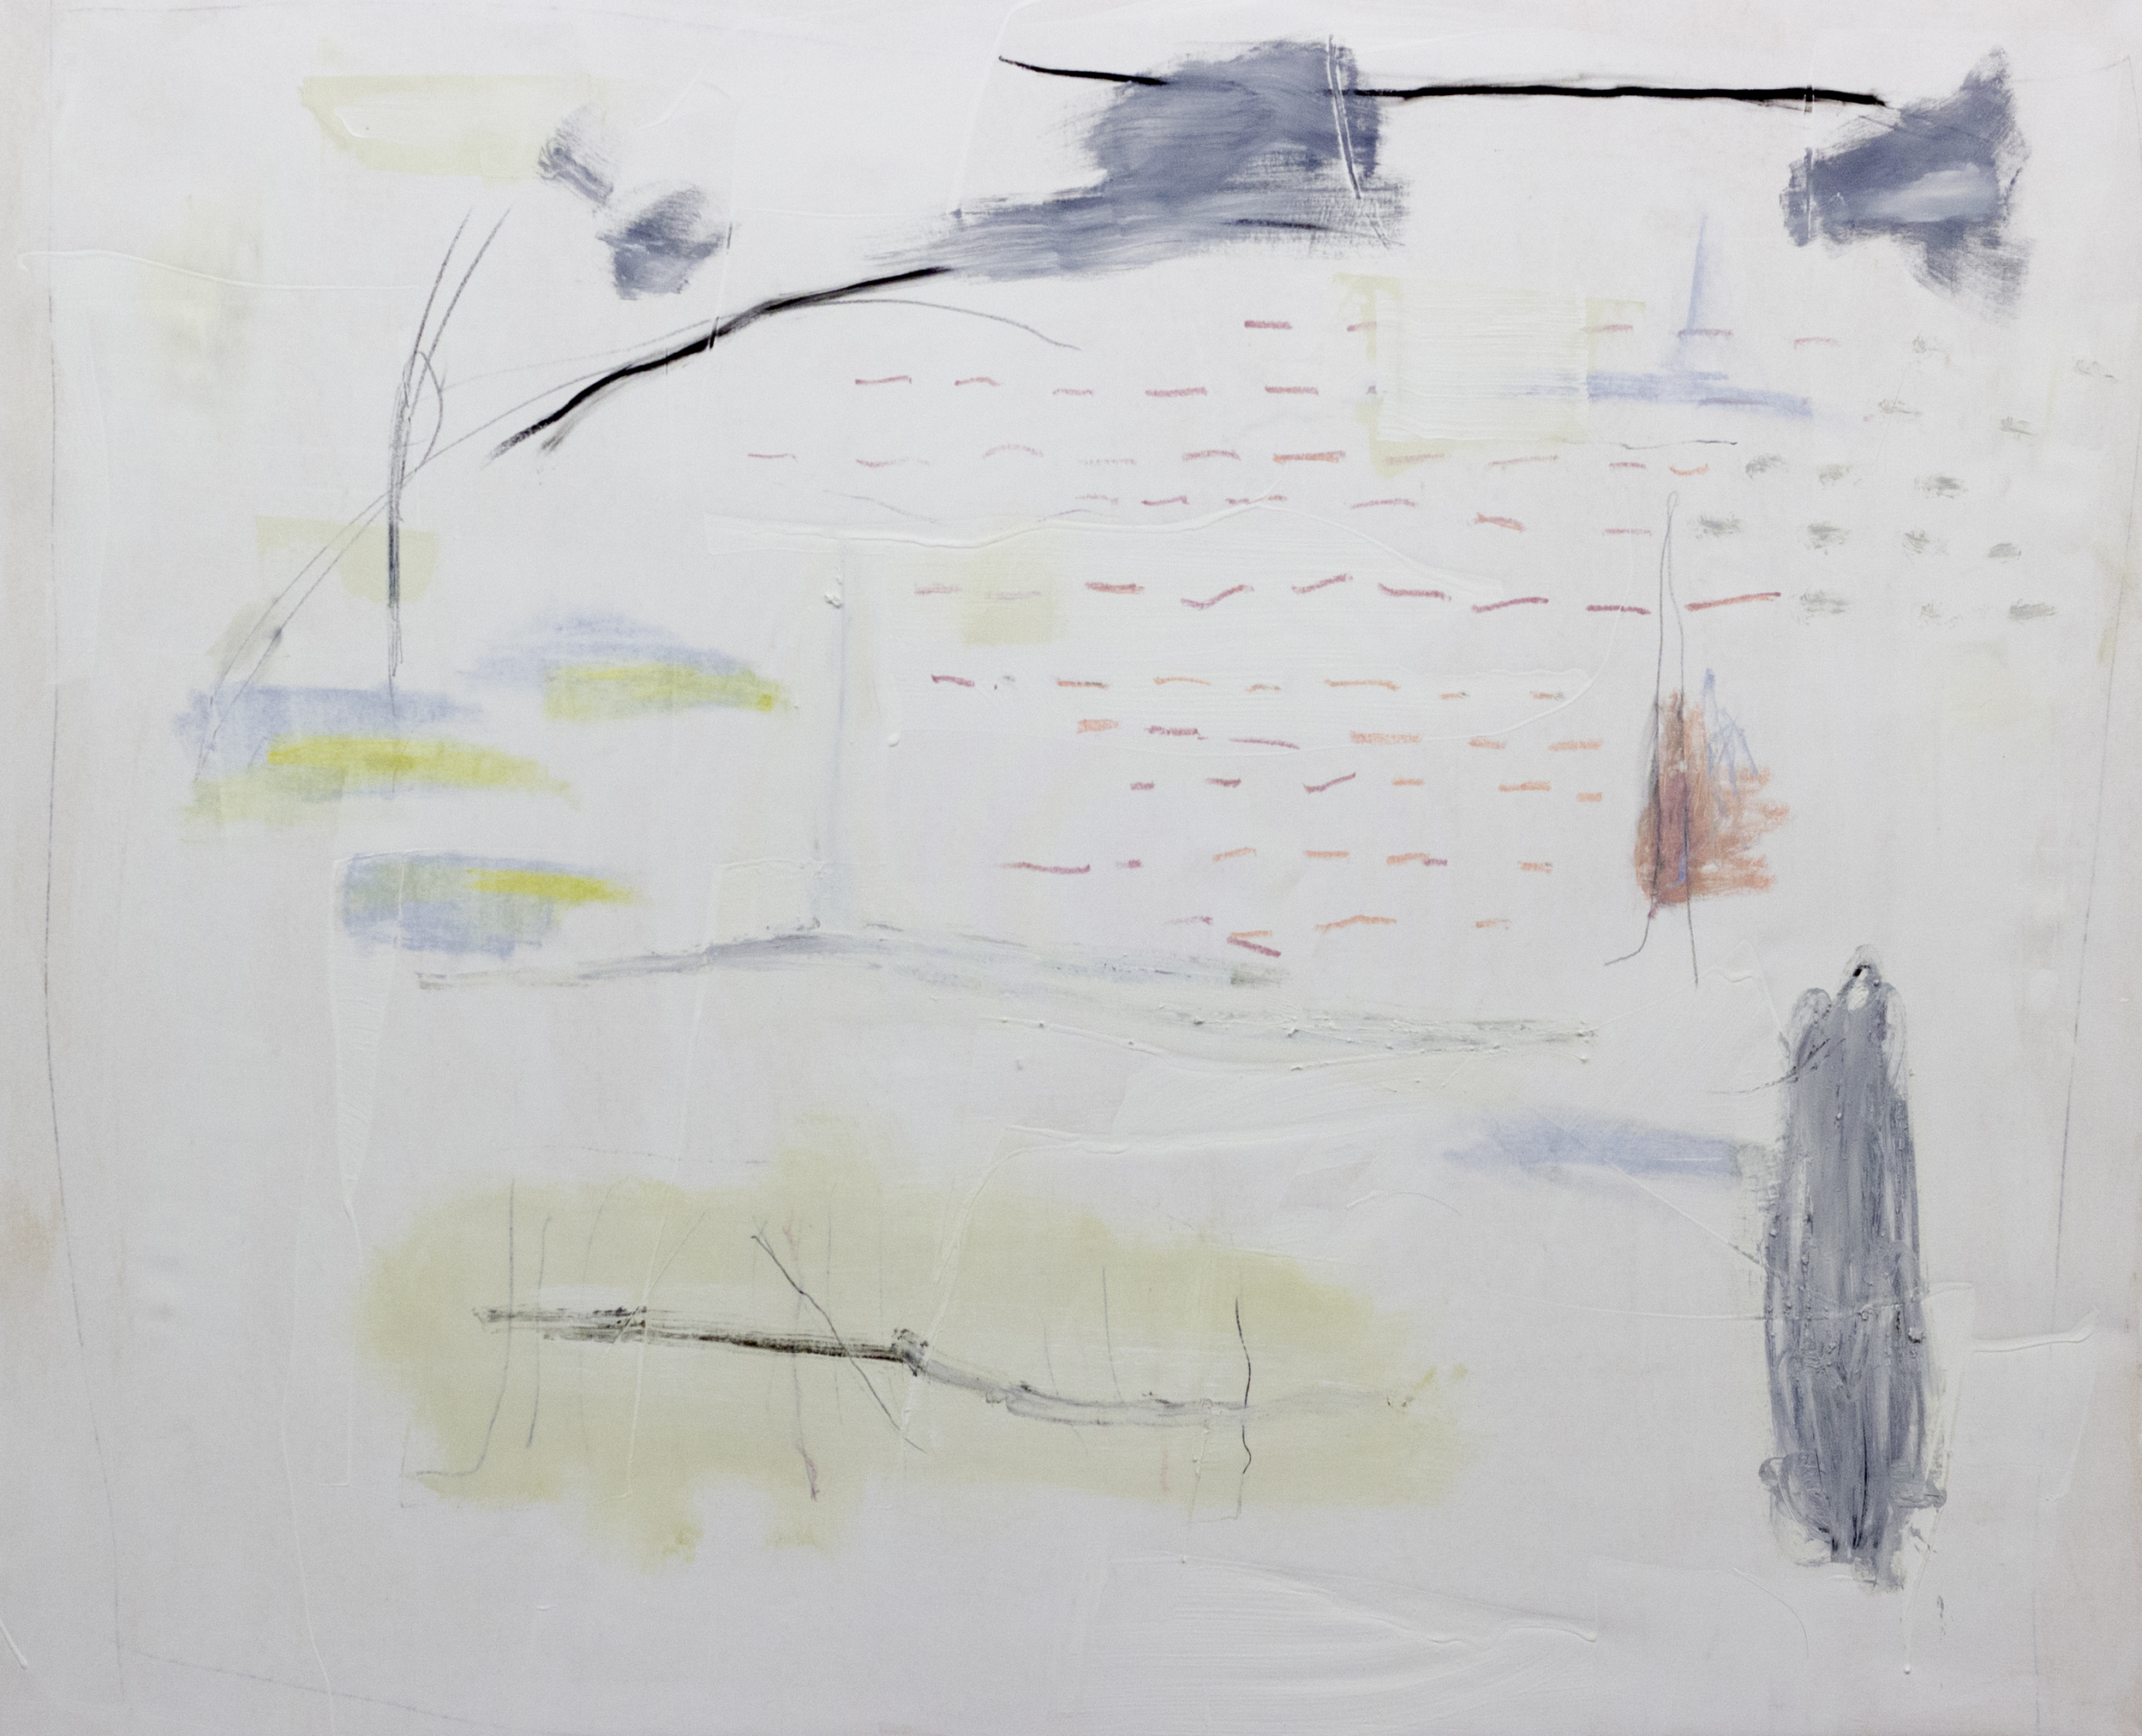 Waltz No. 1 , 2015  46 x 56 Inches  Acrylic, Oil, Graphite, Charcoal, Chalk Pastel, Crayon, and Oil Stick on Canvas